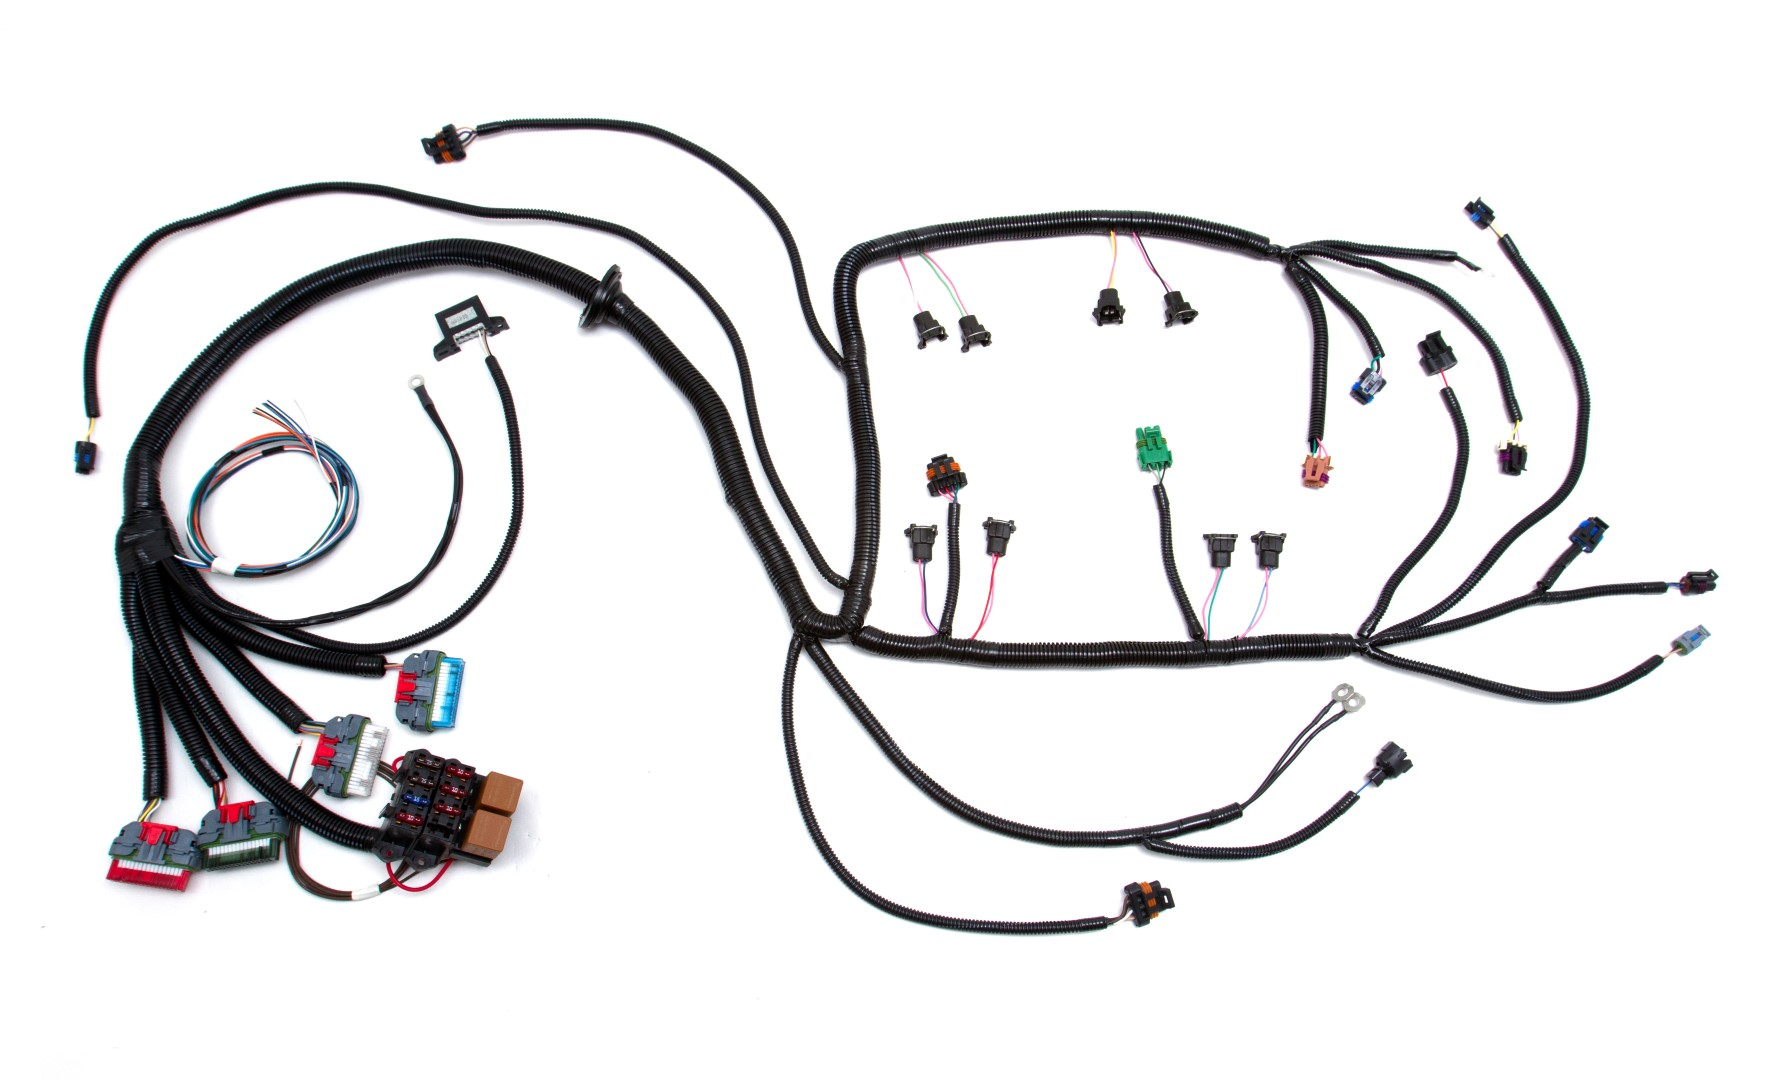 700r4 wiring harness   20 wiring diagram images